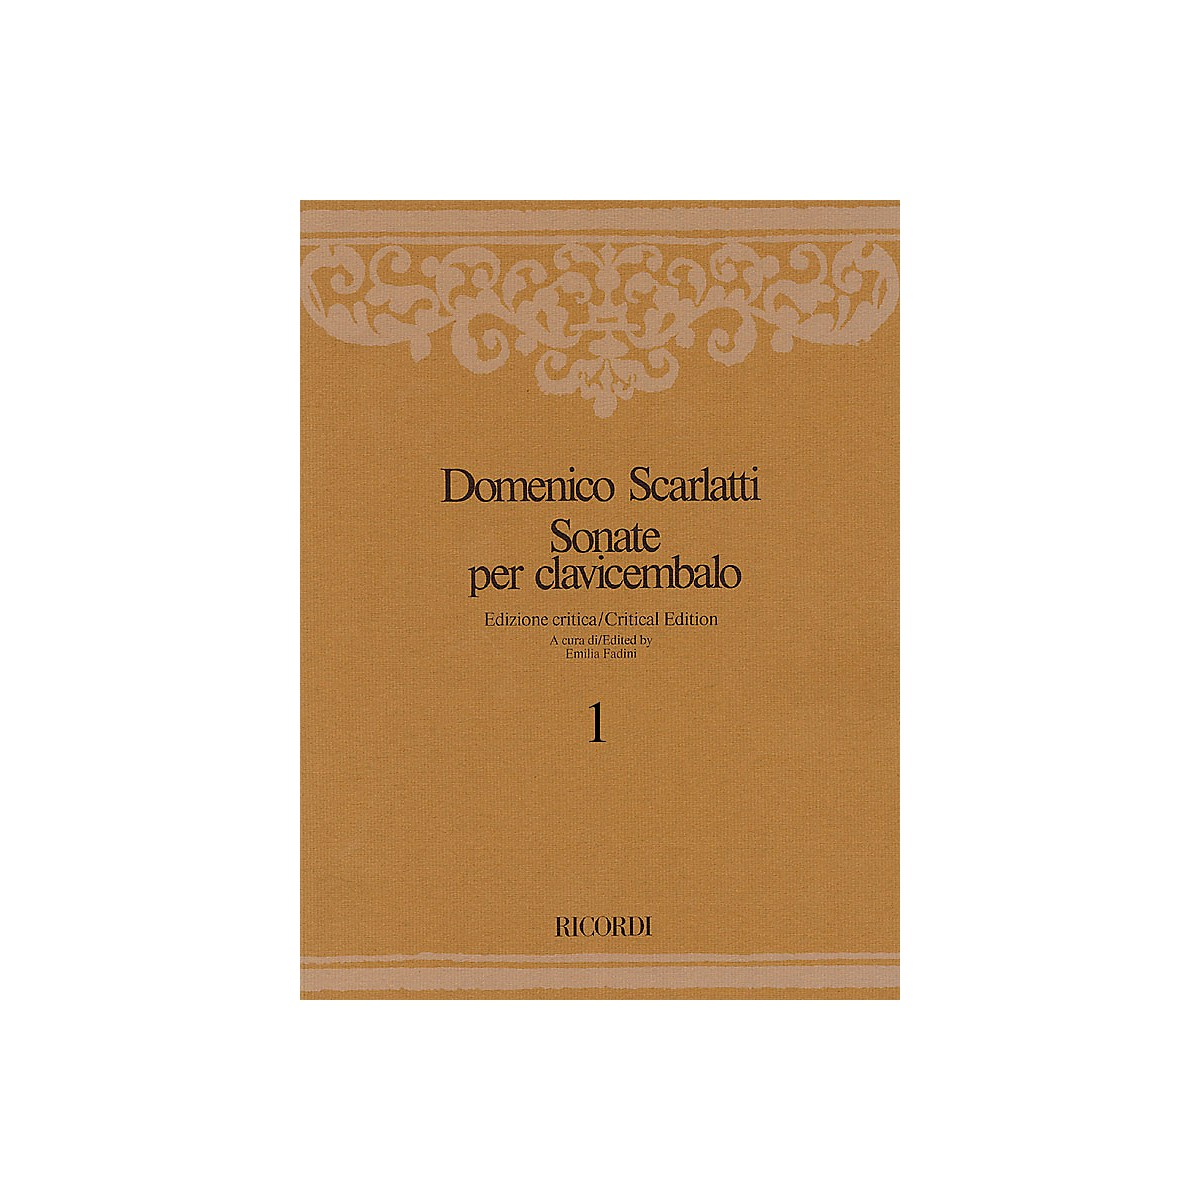 Ricordi Sonate per Clavicembalo Volume 5 Critical Edition Piano Collection by Scarlatti Edited by Emilia Fadini